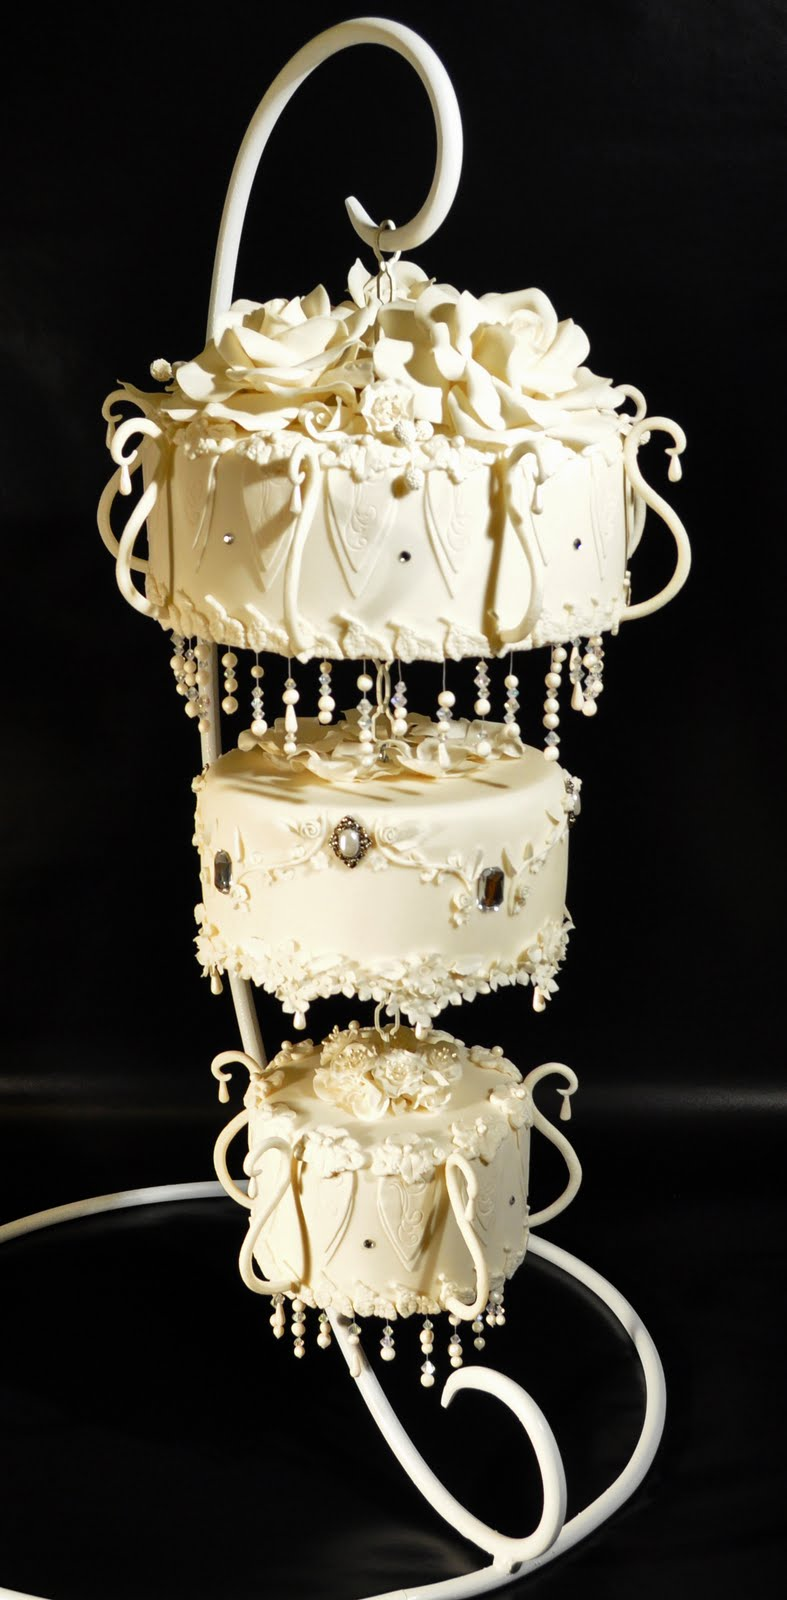 Chandelier wedding cakes artisan cake company look at this beauty from judys cakes she shows step by step photos on her blog and was even published in cake central magazine i am not surprised arubaitofo Image collections